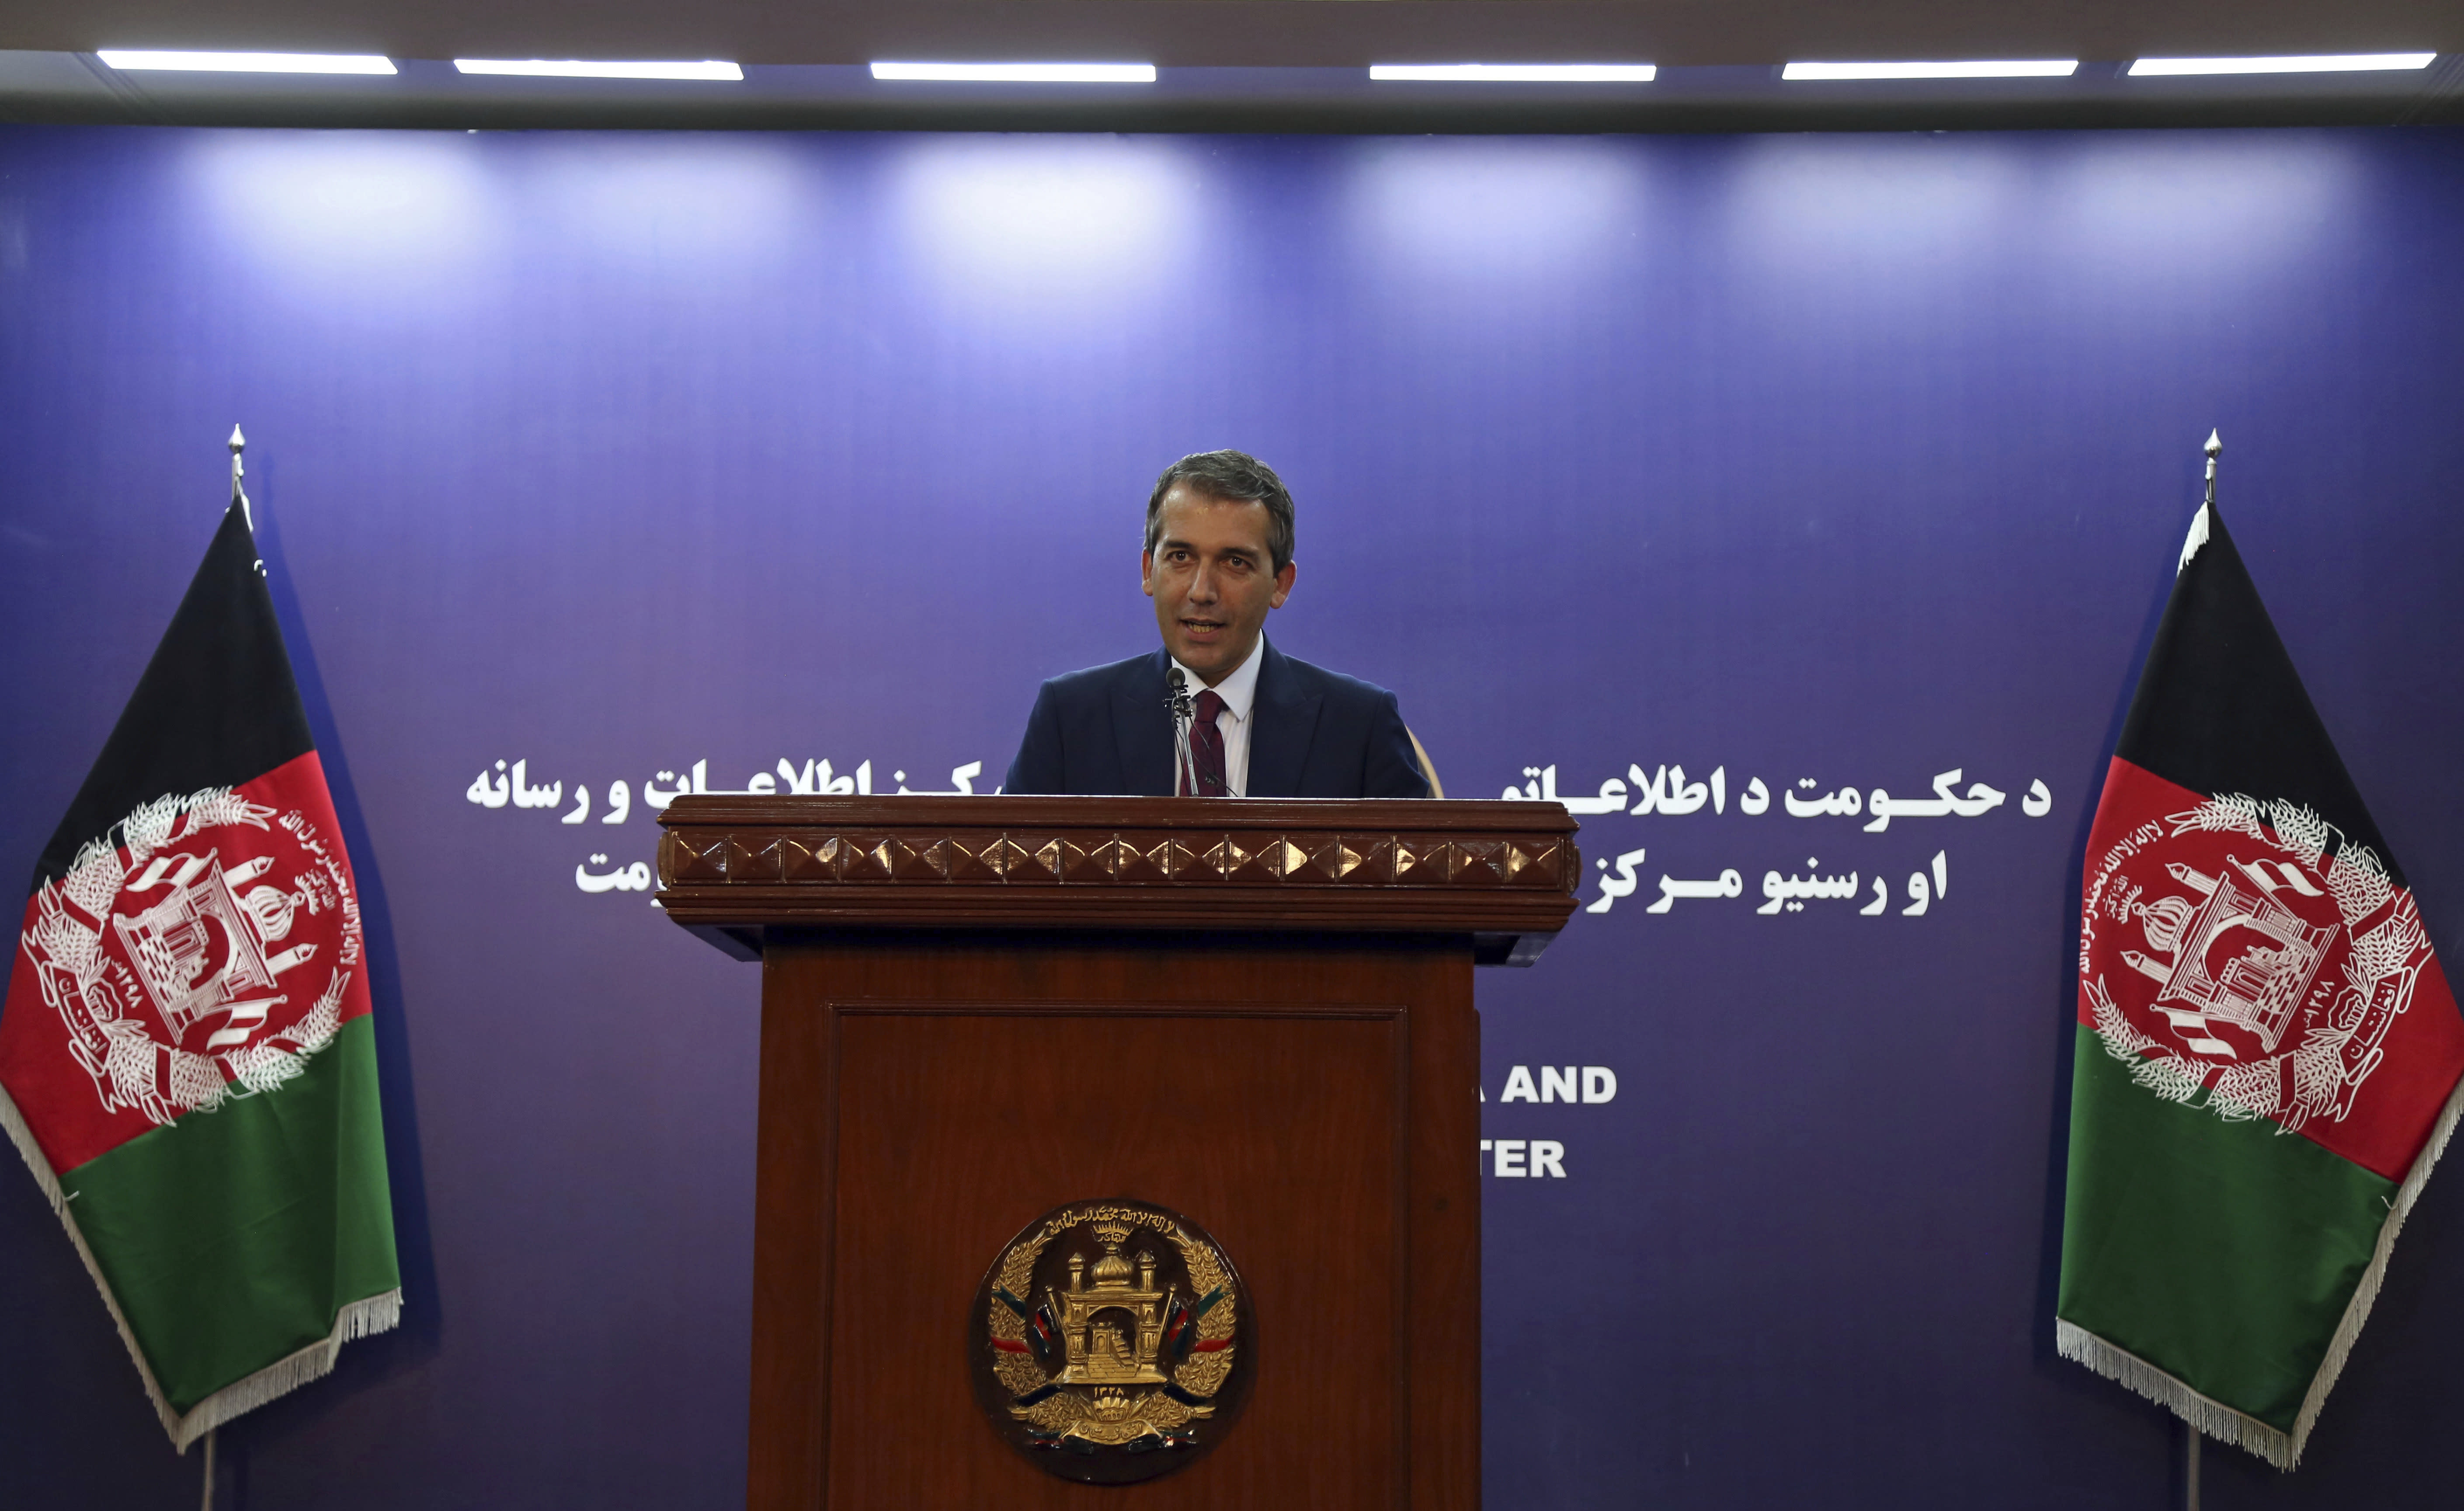 """Presidential spokesman Sediq Seddiqi speaks during a press conference in Kabul, Afghanistan, Monday, Sept. 2, 2019. A U.S. envoy showed the draft of a U.S.-Taliban agreement to Afghan leaders on Monday after declaring they were """"at the threshold"""" of a deal to end America's longest war, officials said. Seddiqi told reporters the Afghan government likely would take a """"couple of days"""" to study the deal. (AP Photo/Rahmat Gul)"""